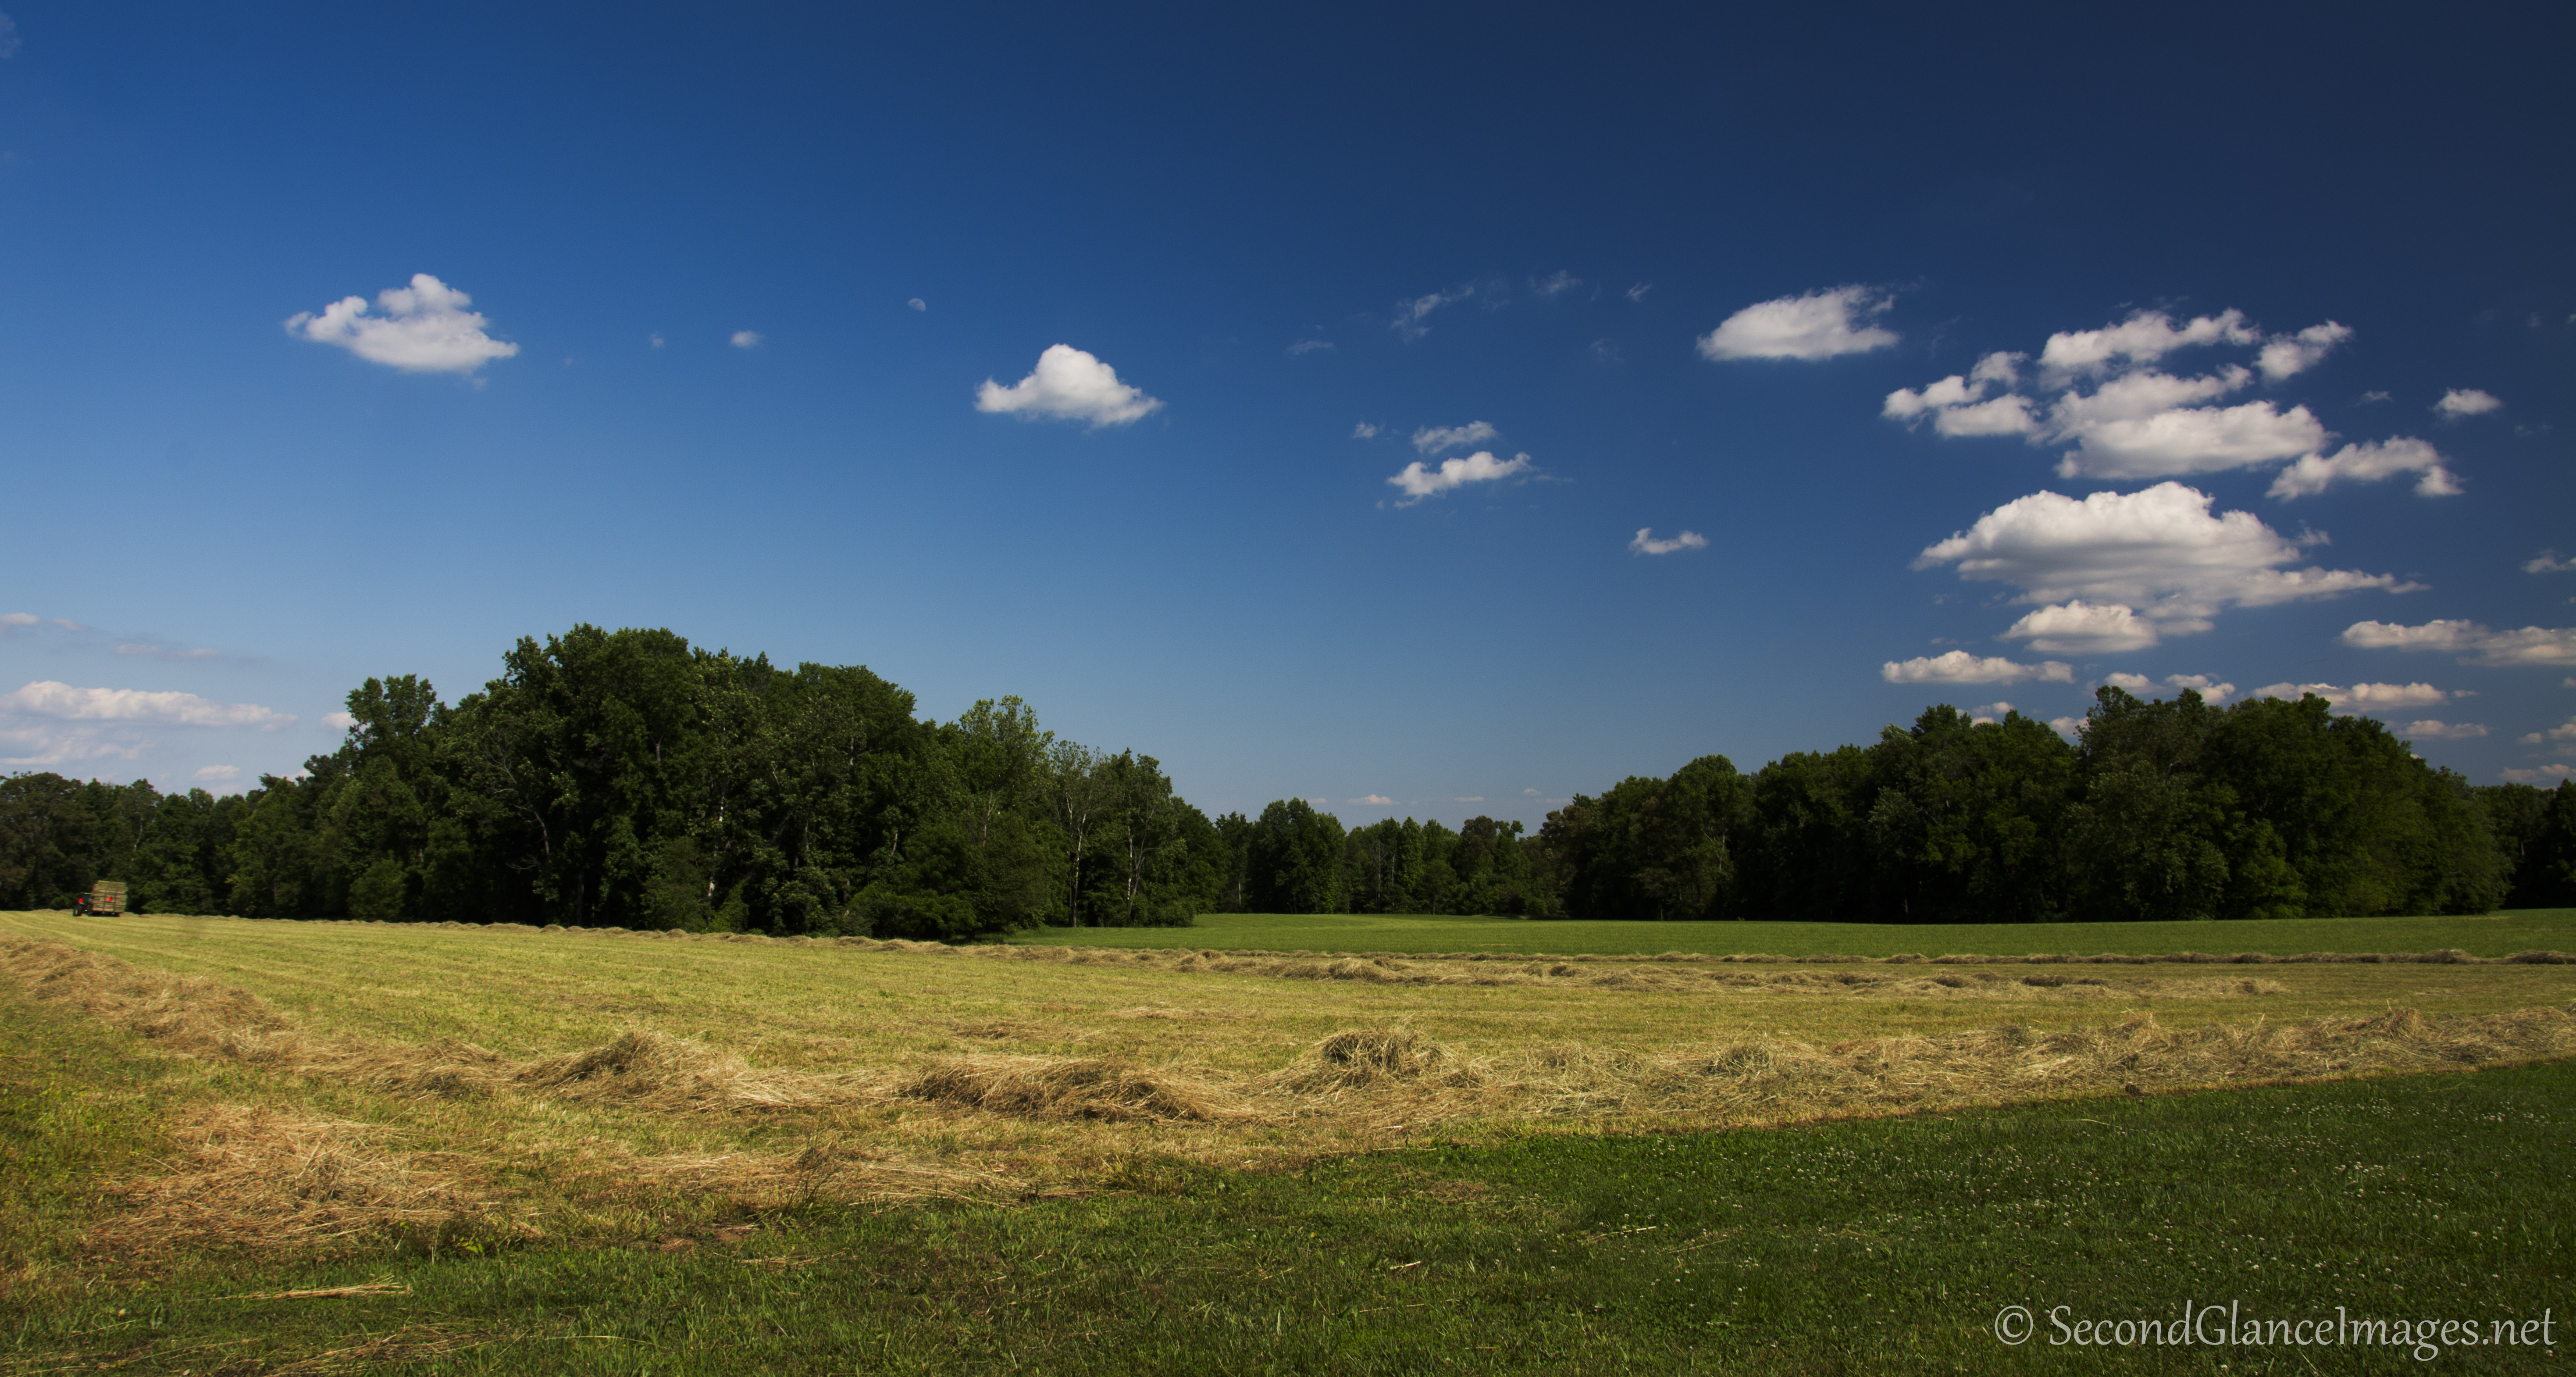 Another view across the fields ...